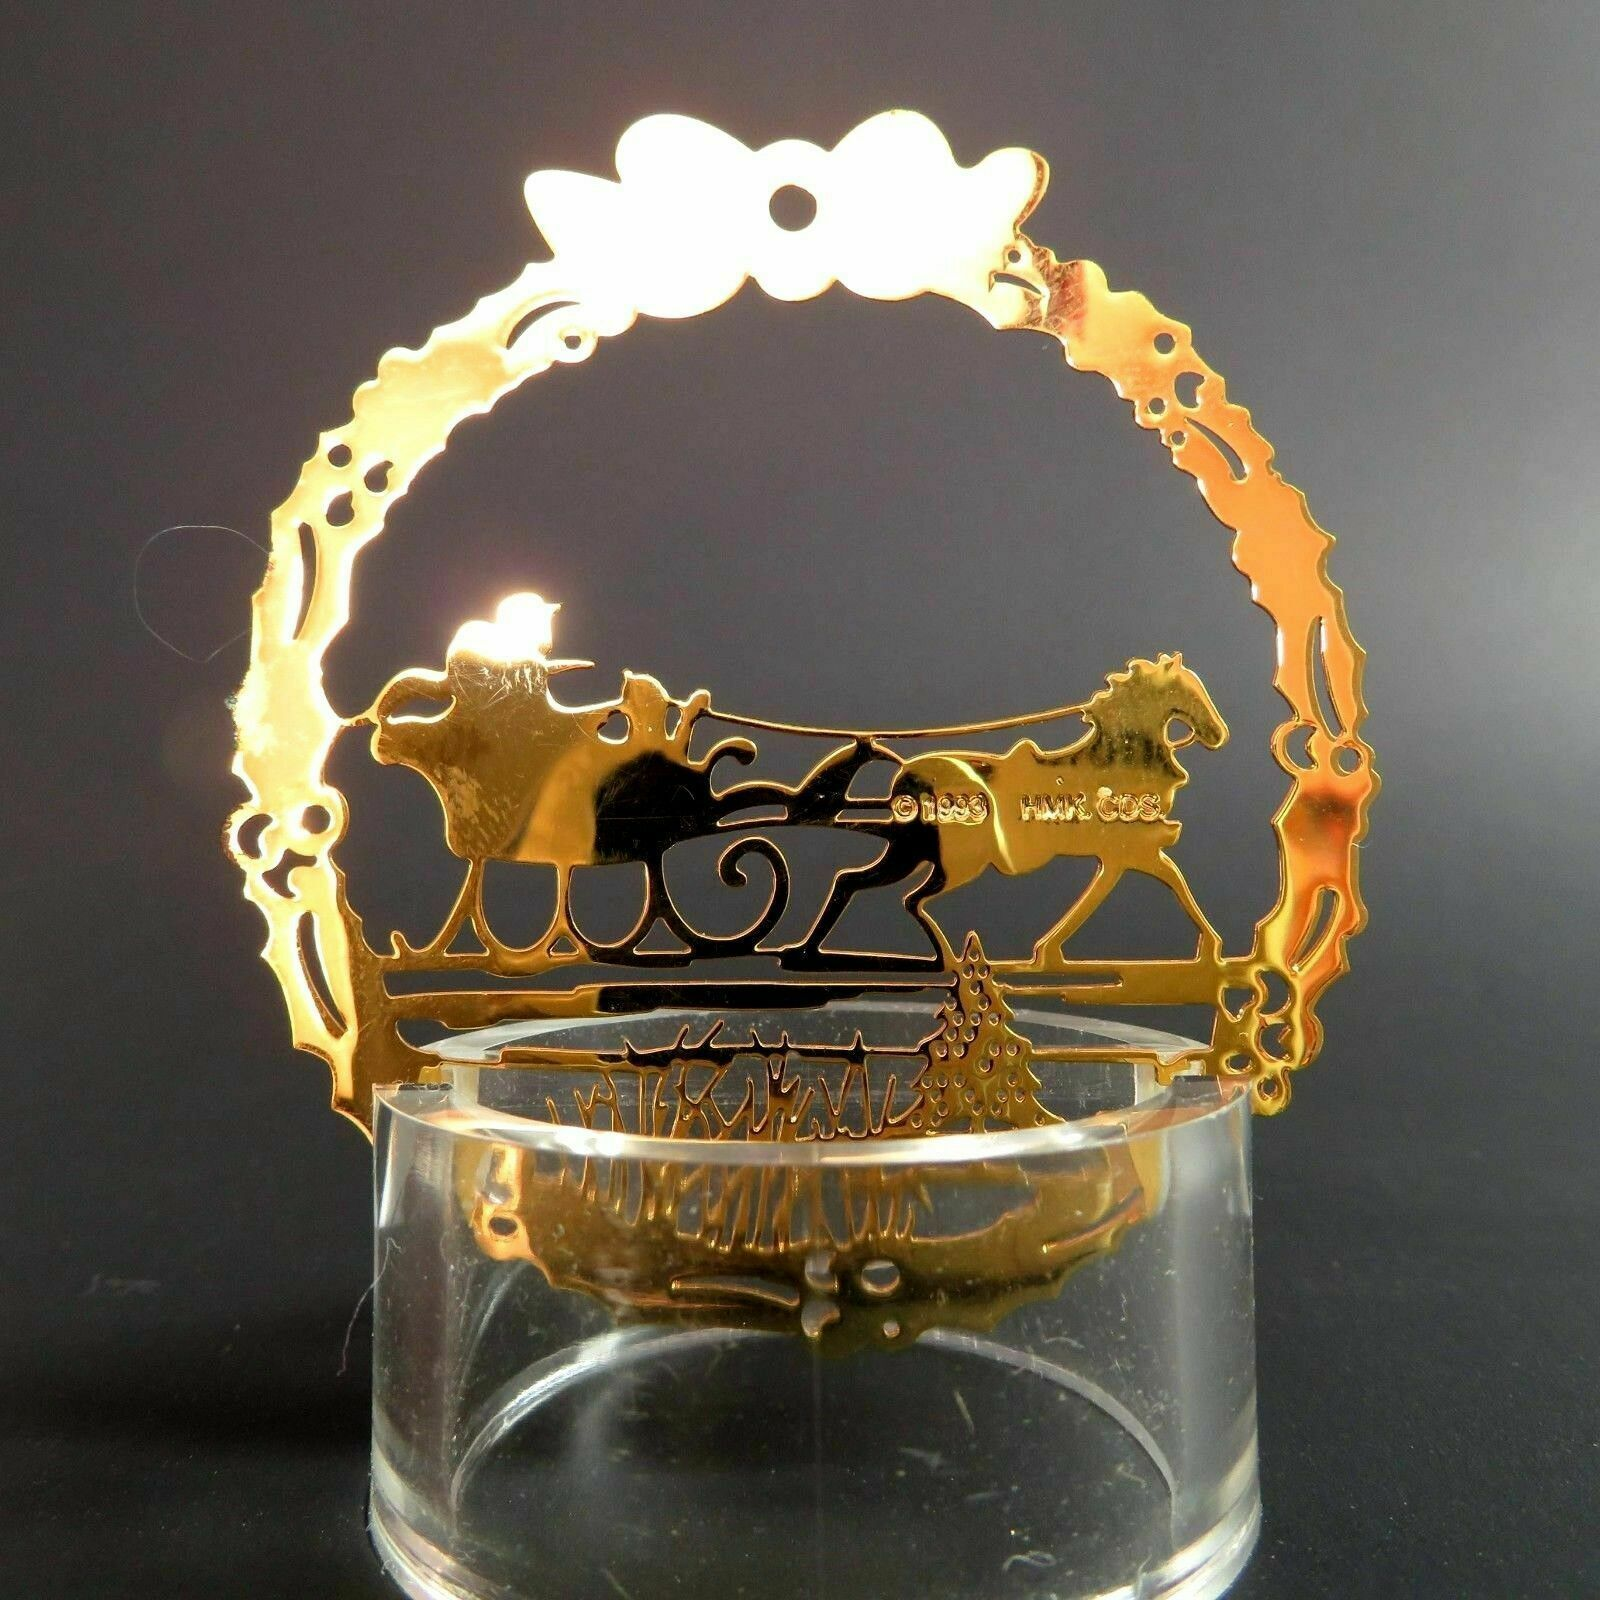 Vintage Sleigh Ride Christmas Ornament Hallmark Gold Metal Etched Embossed Scene image 2